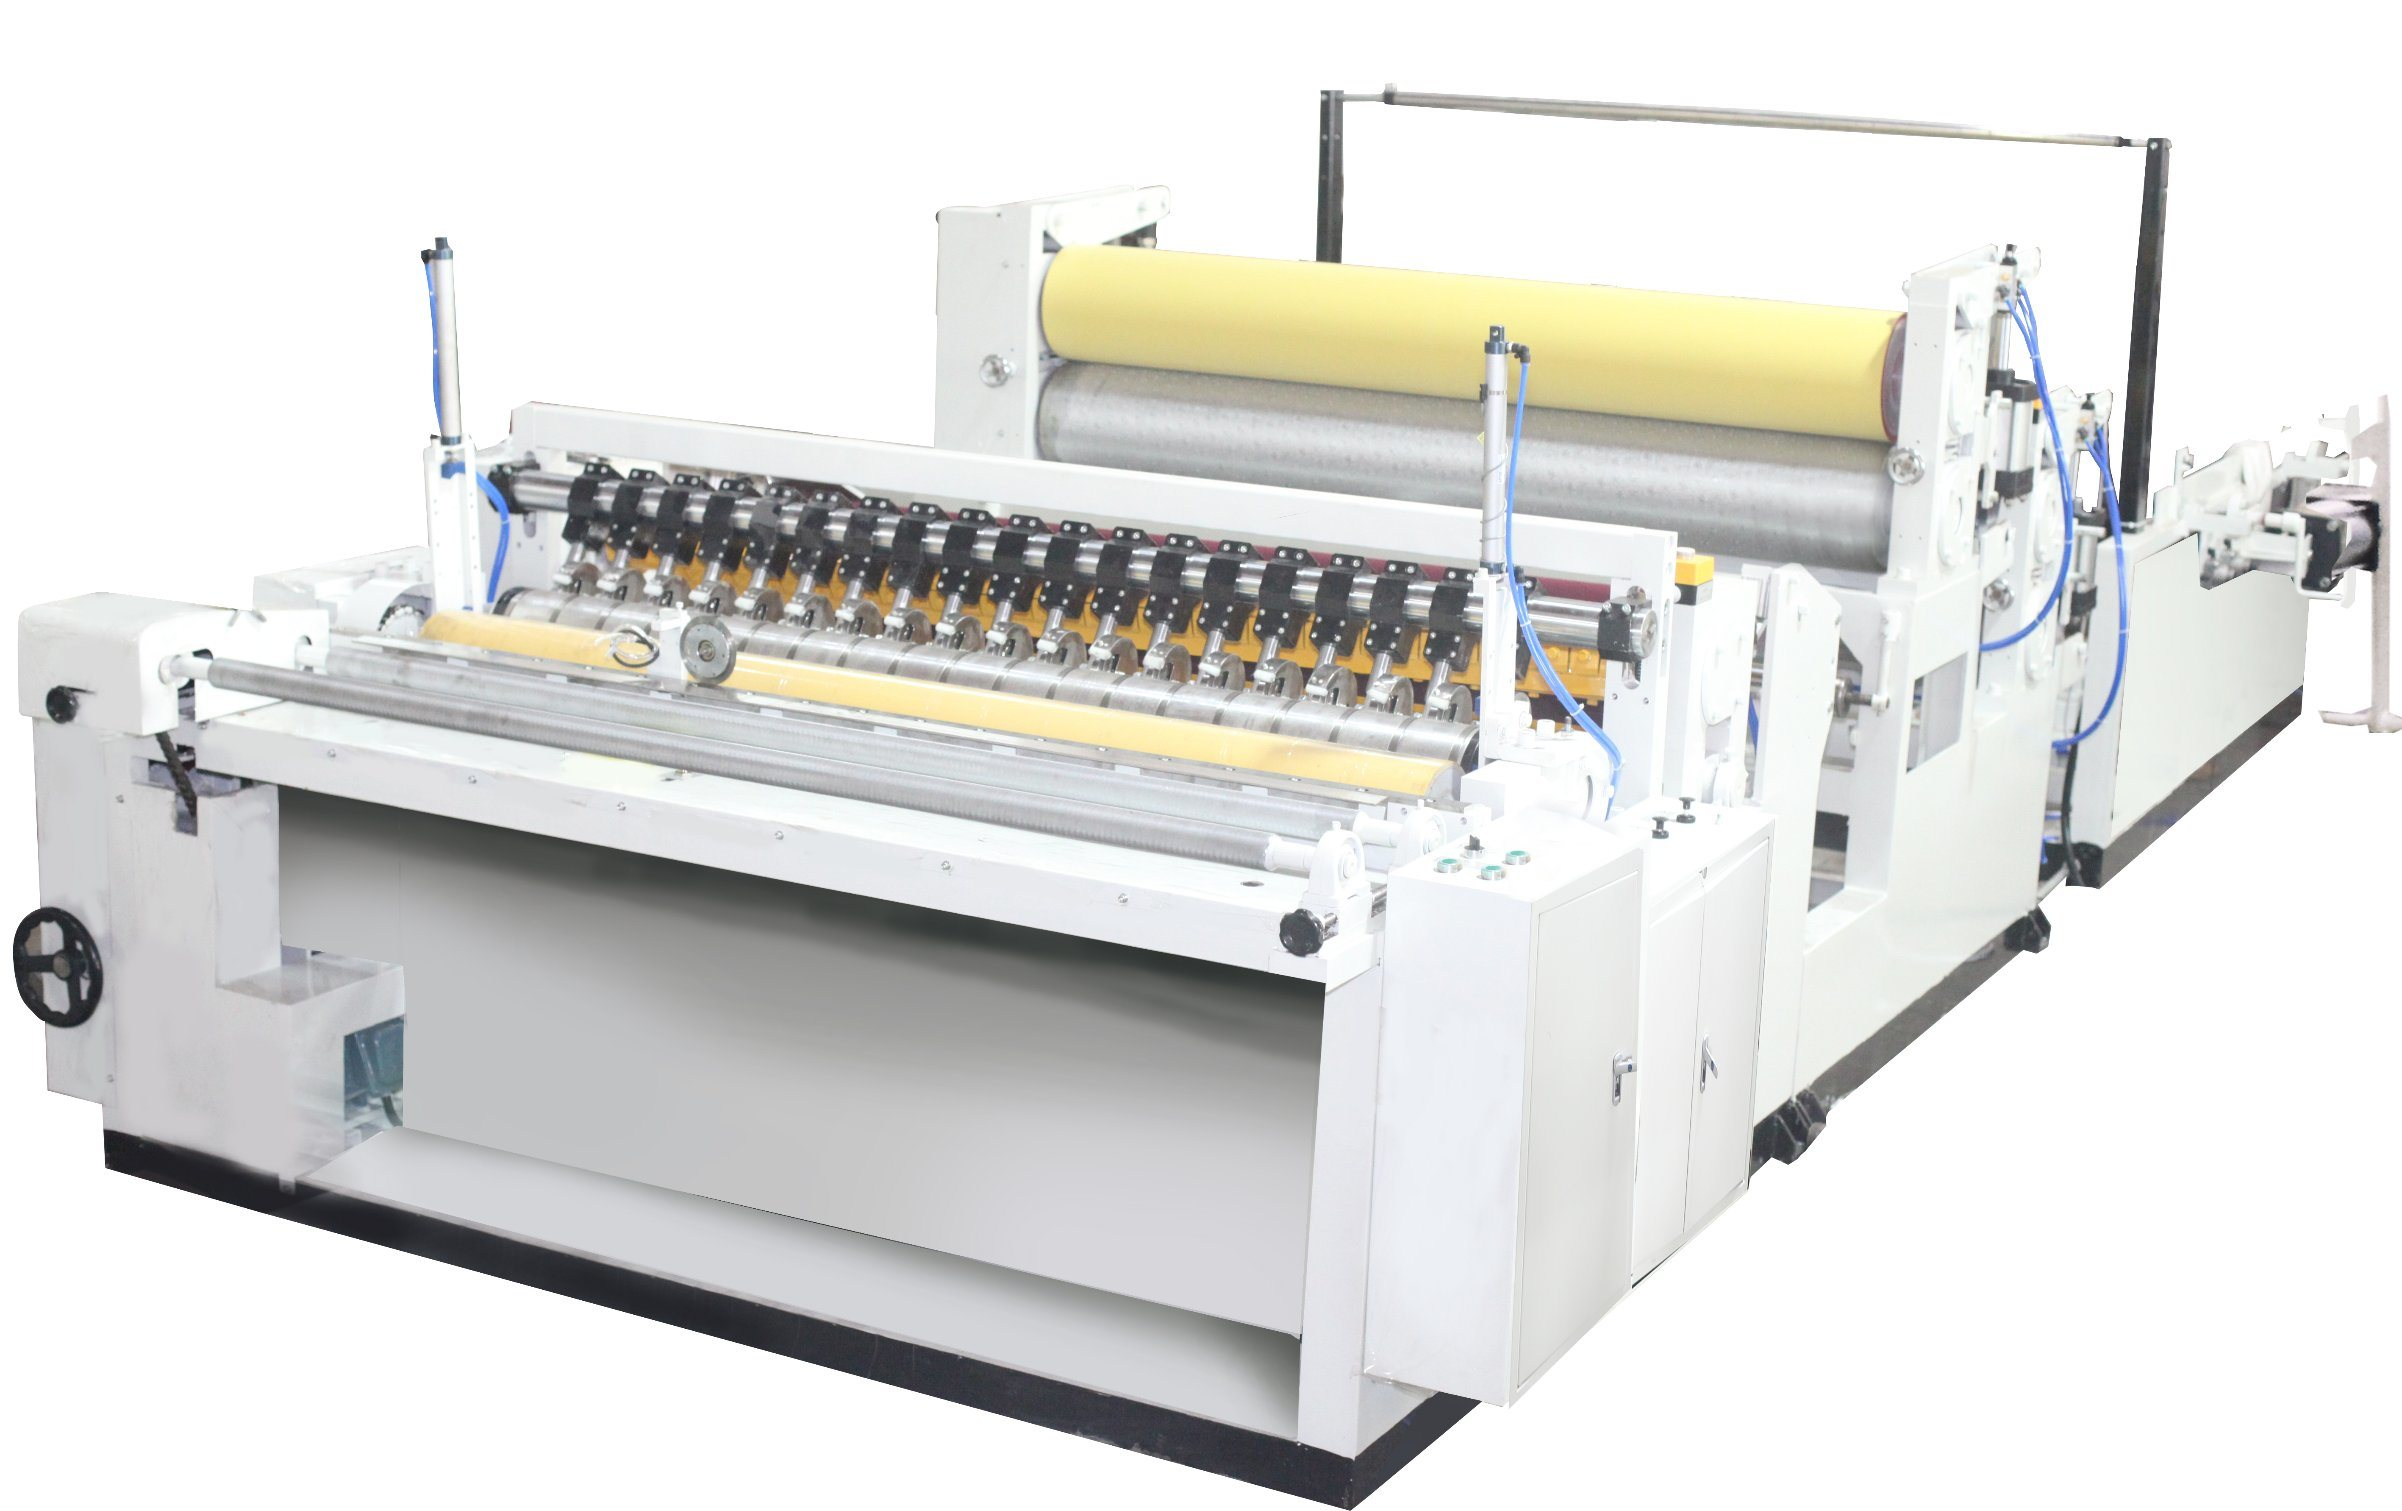 Automatic Rewinding Jumbo Roll Toilet Paper Making Machine/ Jrt Rewinder Machine